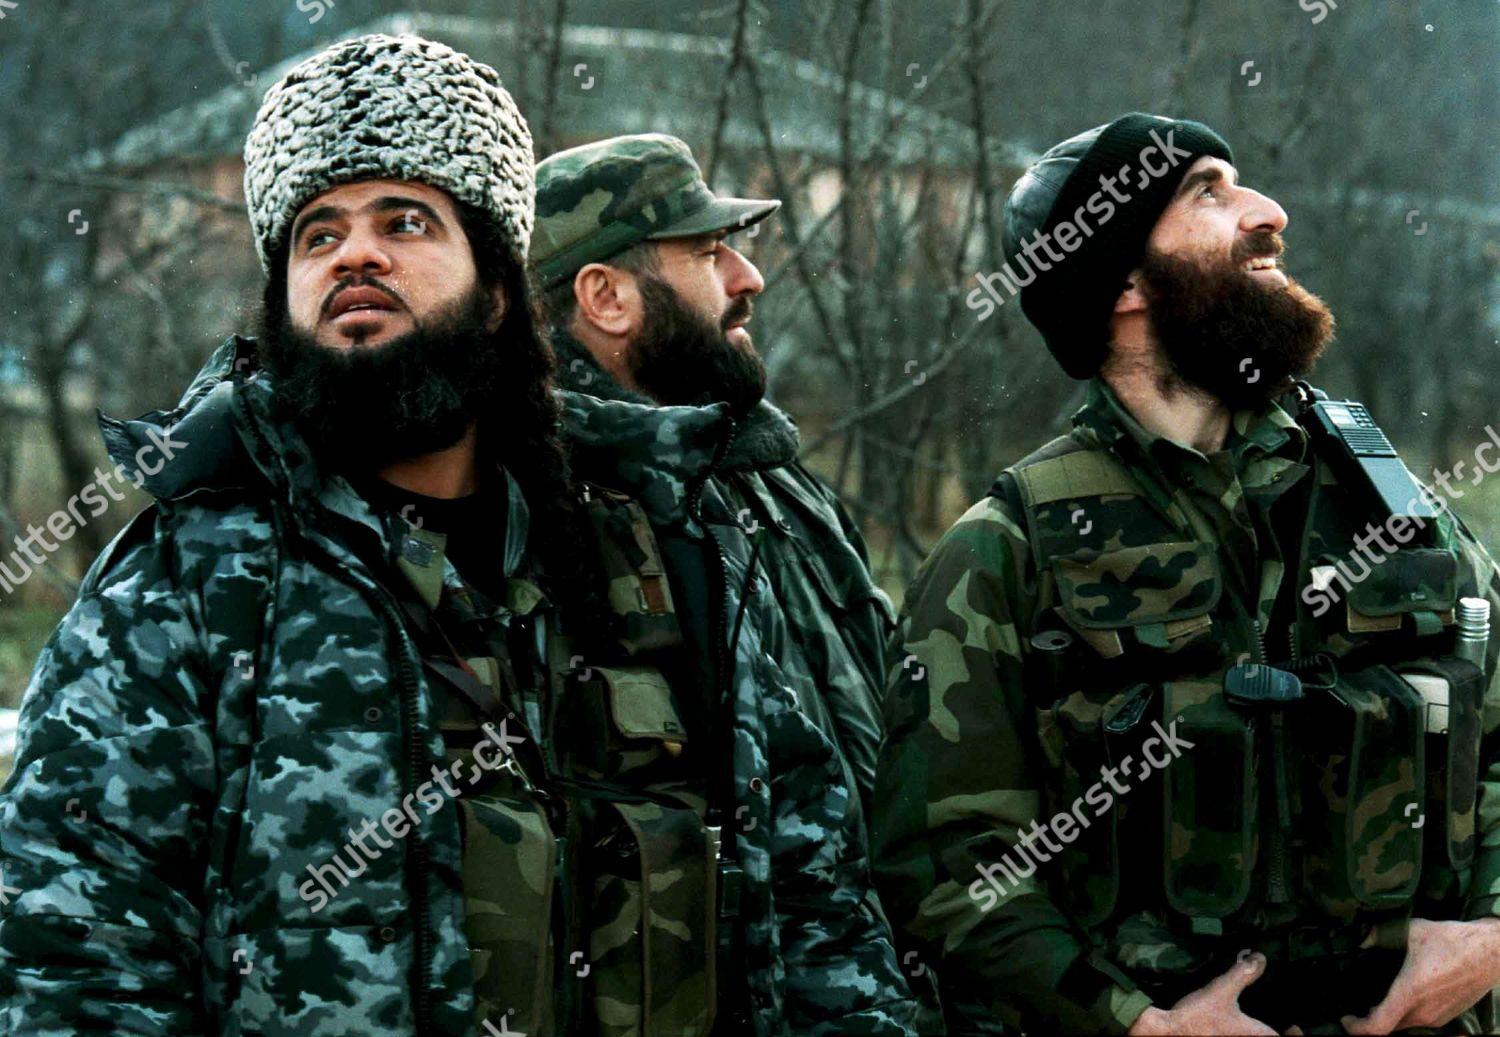 life-on-the-secret-mountain-base-of-the-chechen-rebels-shutterstock-editorial-315318h.jpg